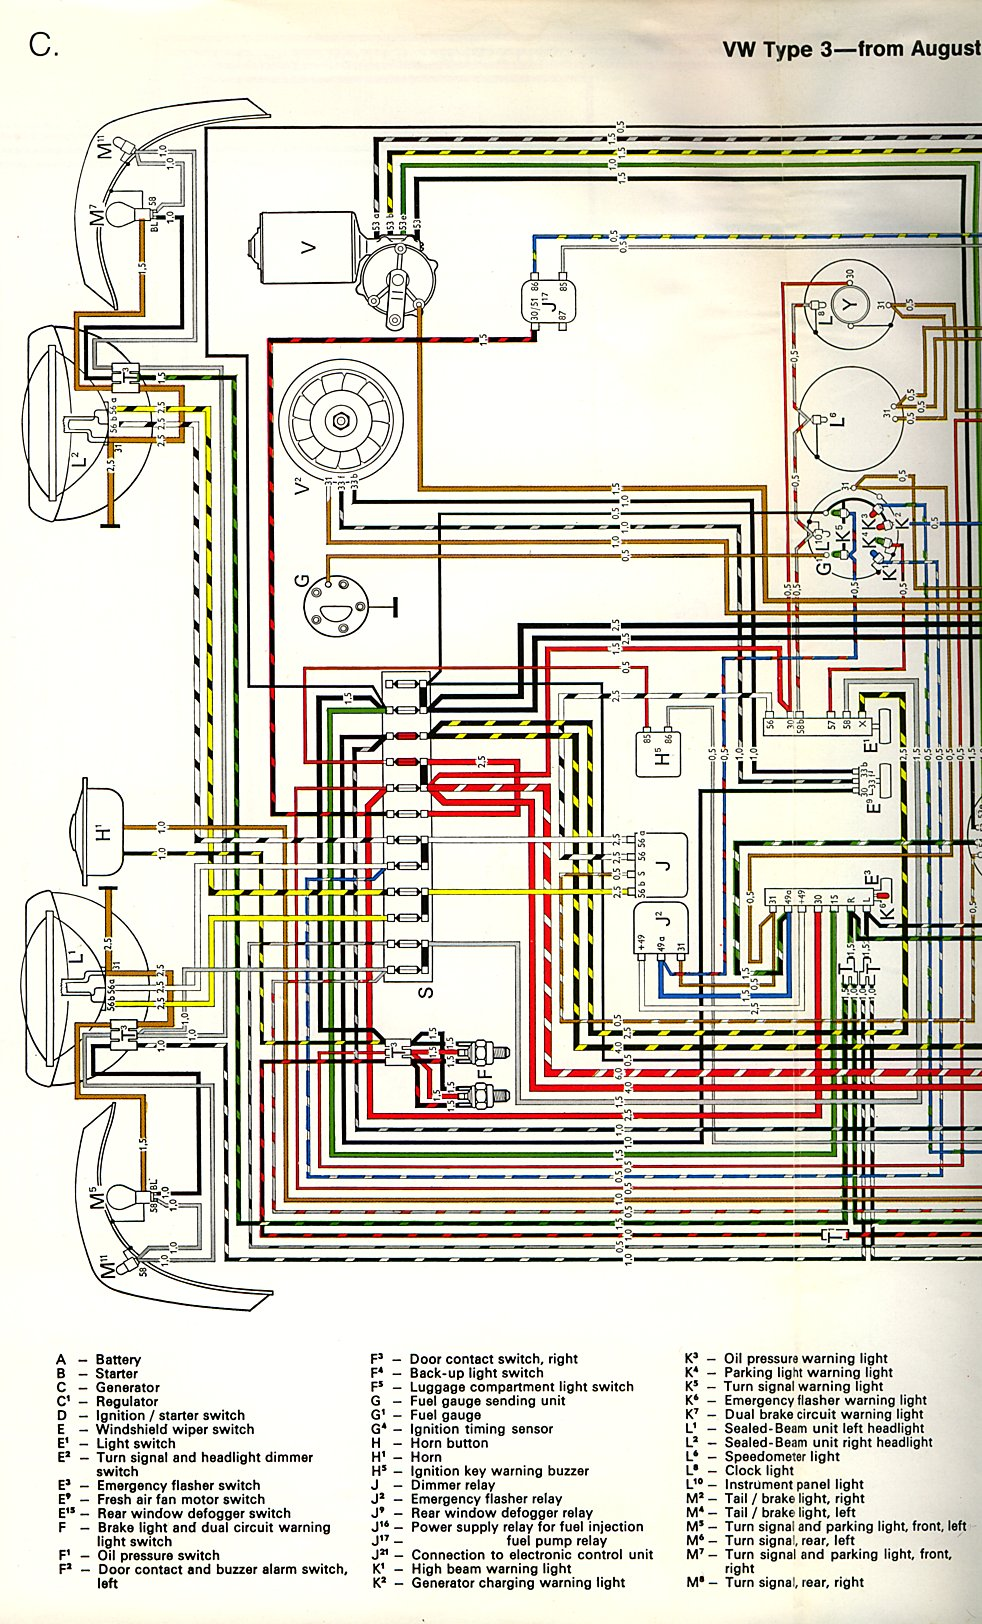 type3_72a thesamba com type 3 wiring diagrams 1970 vw beetle wiring diagram at panicattacktreatment.co